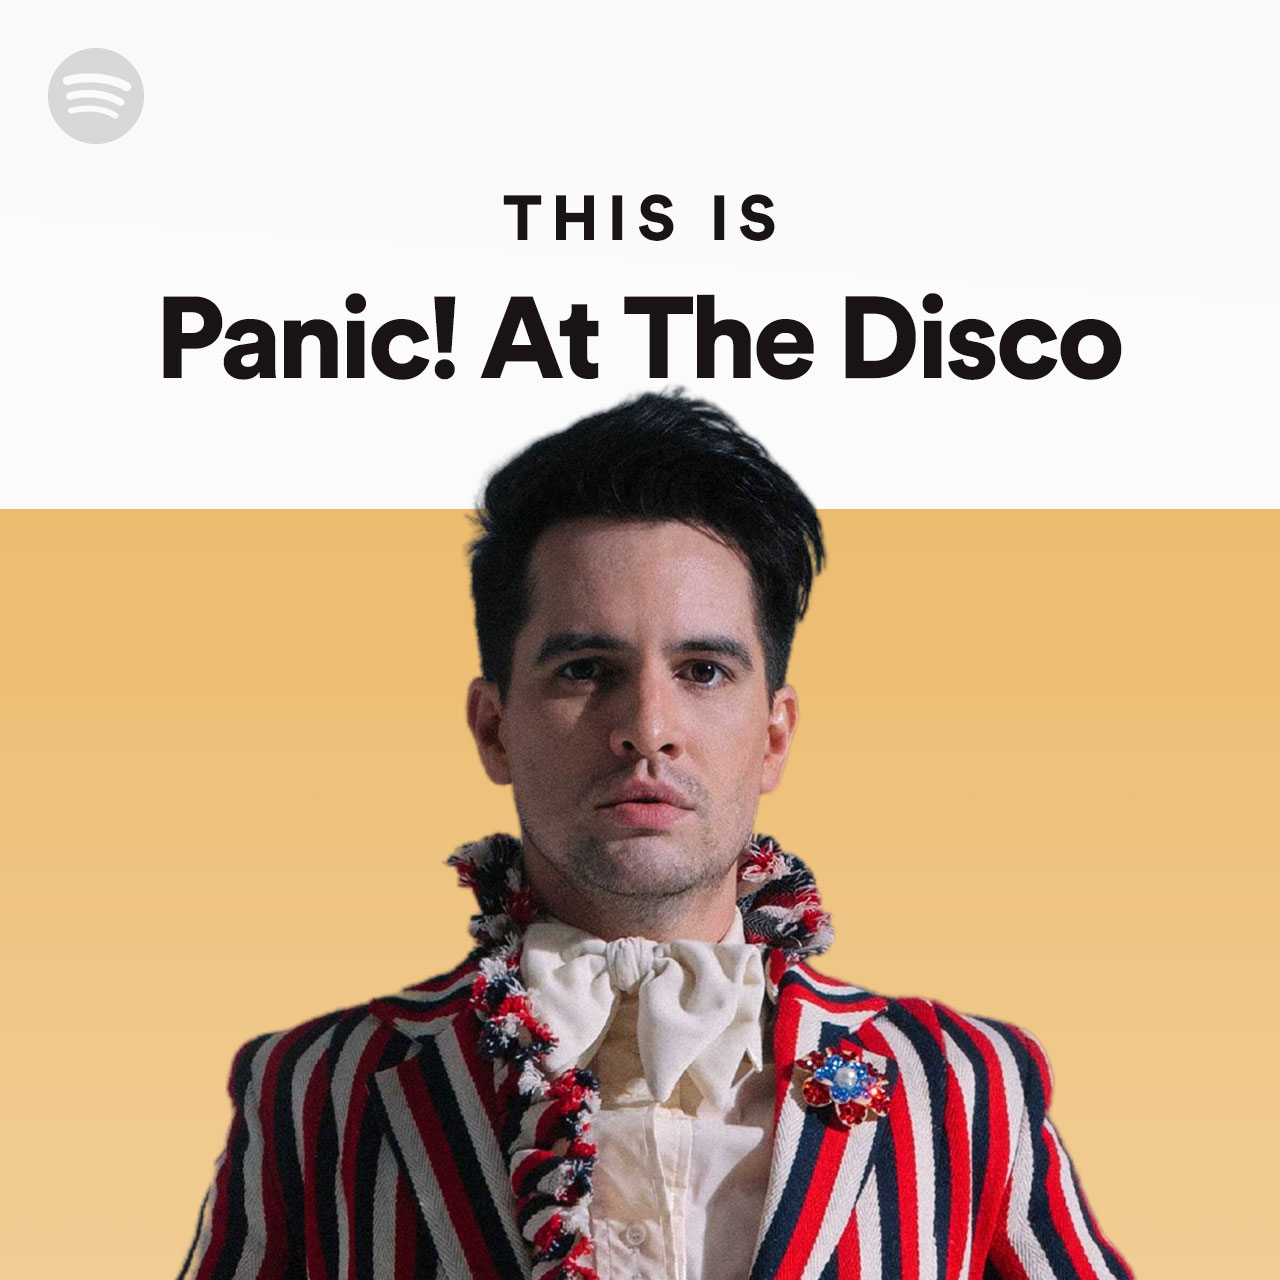 Panic At The Disco Hey Look Ma I Made It: This Is Panic! At The Disco On Spotify